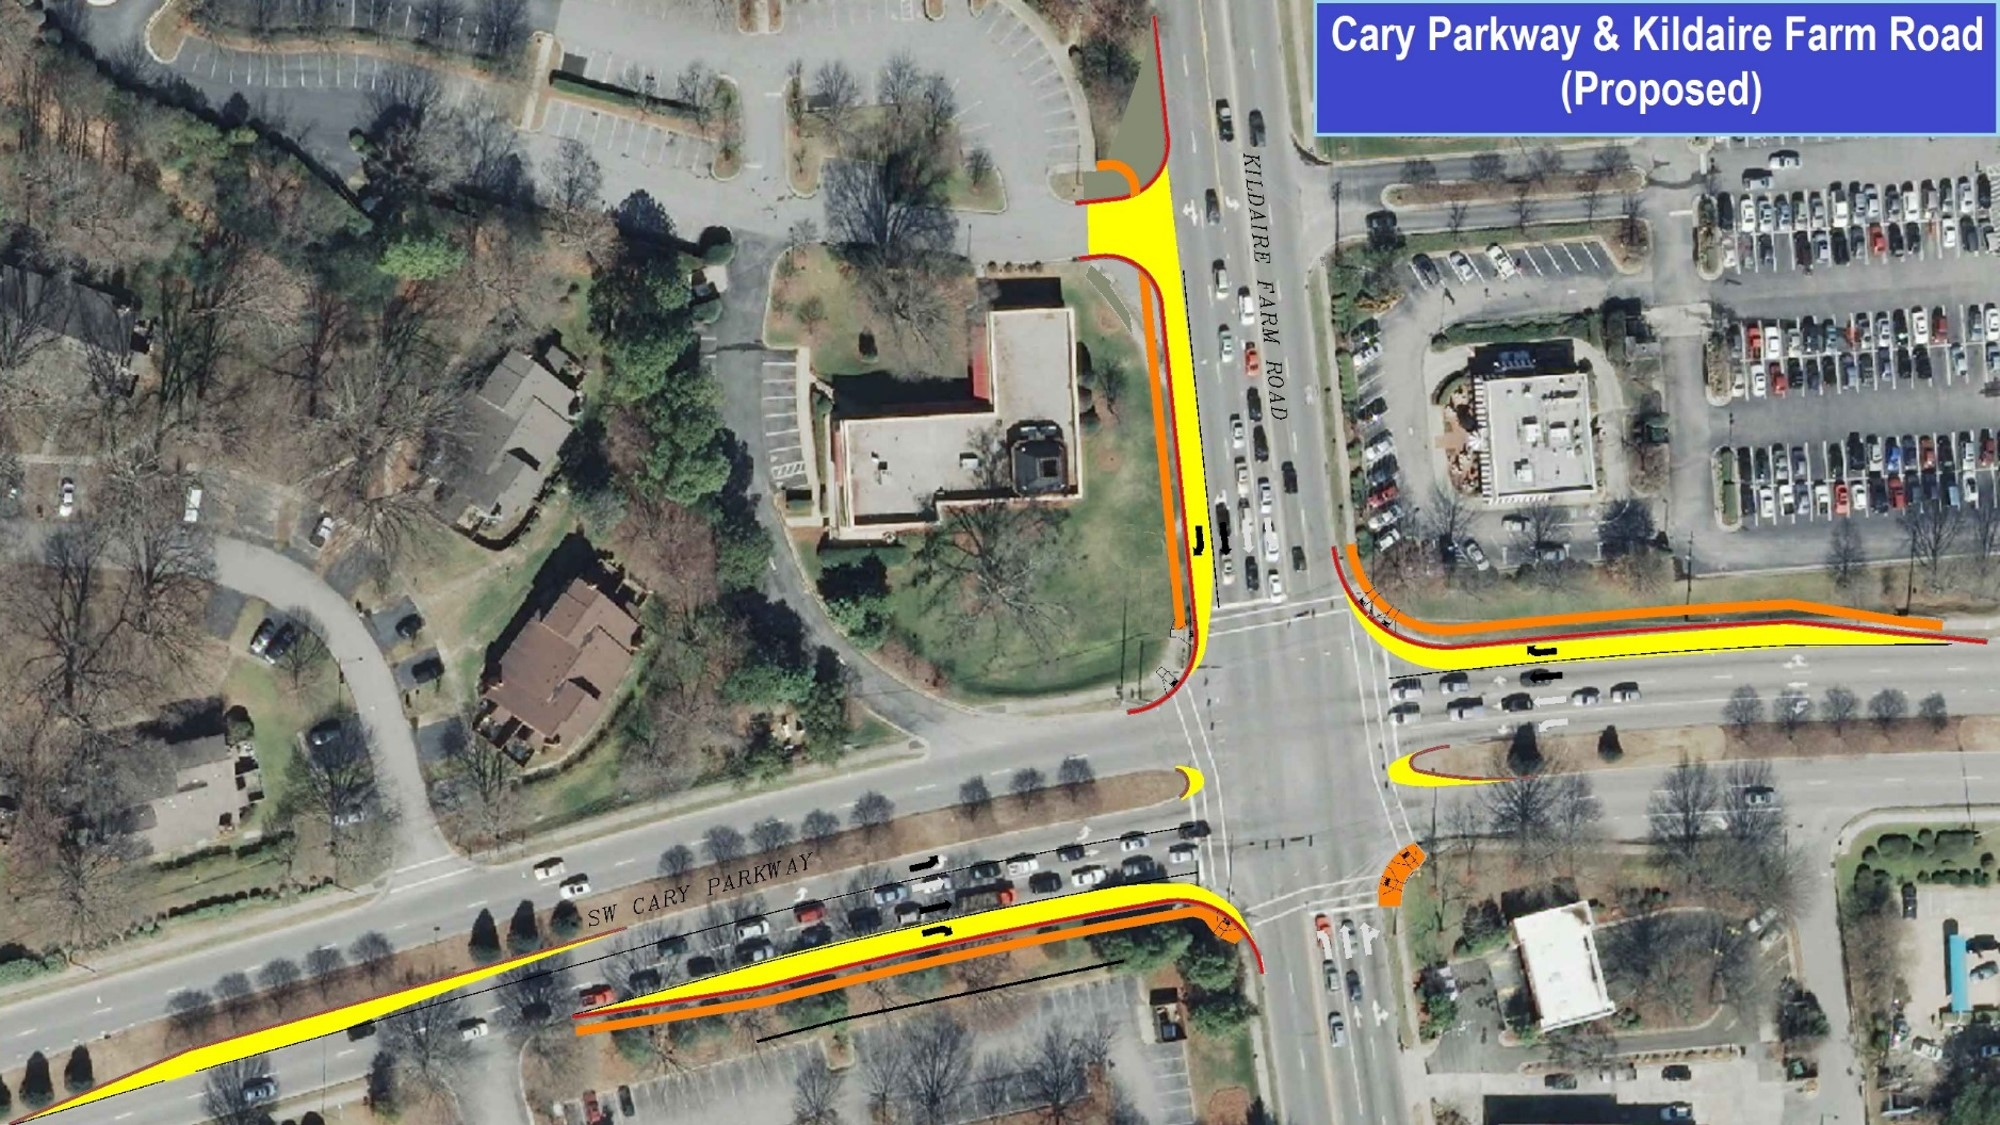 Kildaire Farm Road And Cary Parkway Intersection Improvements Town Of Cary